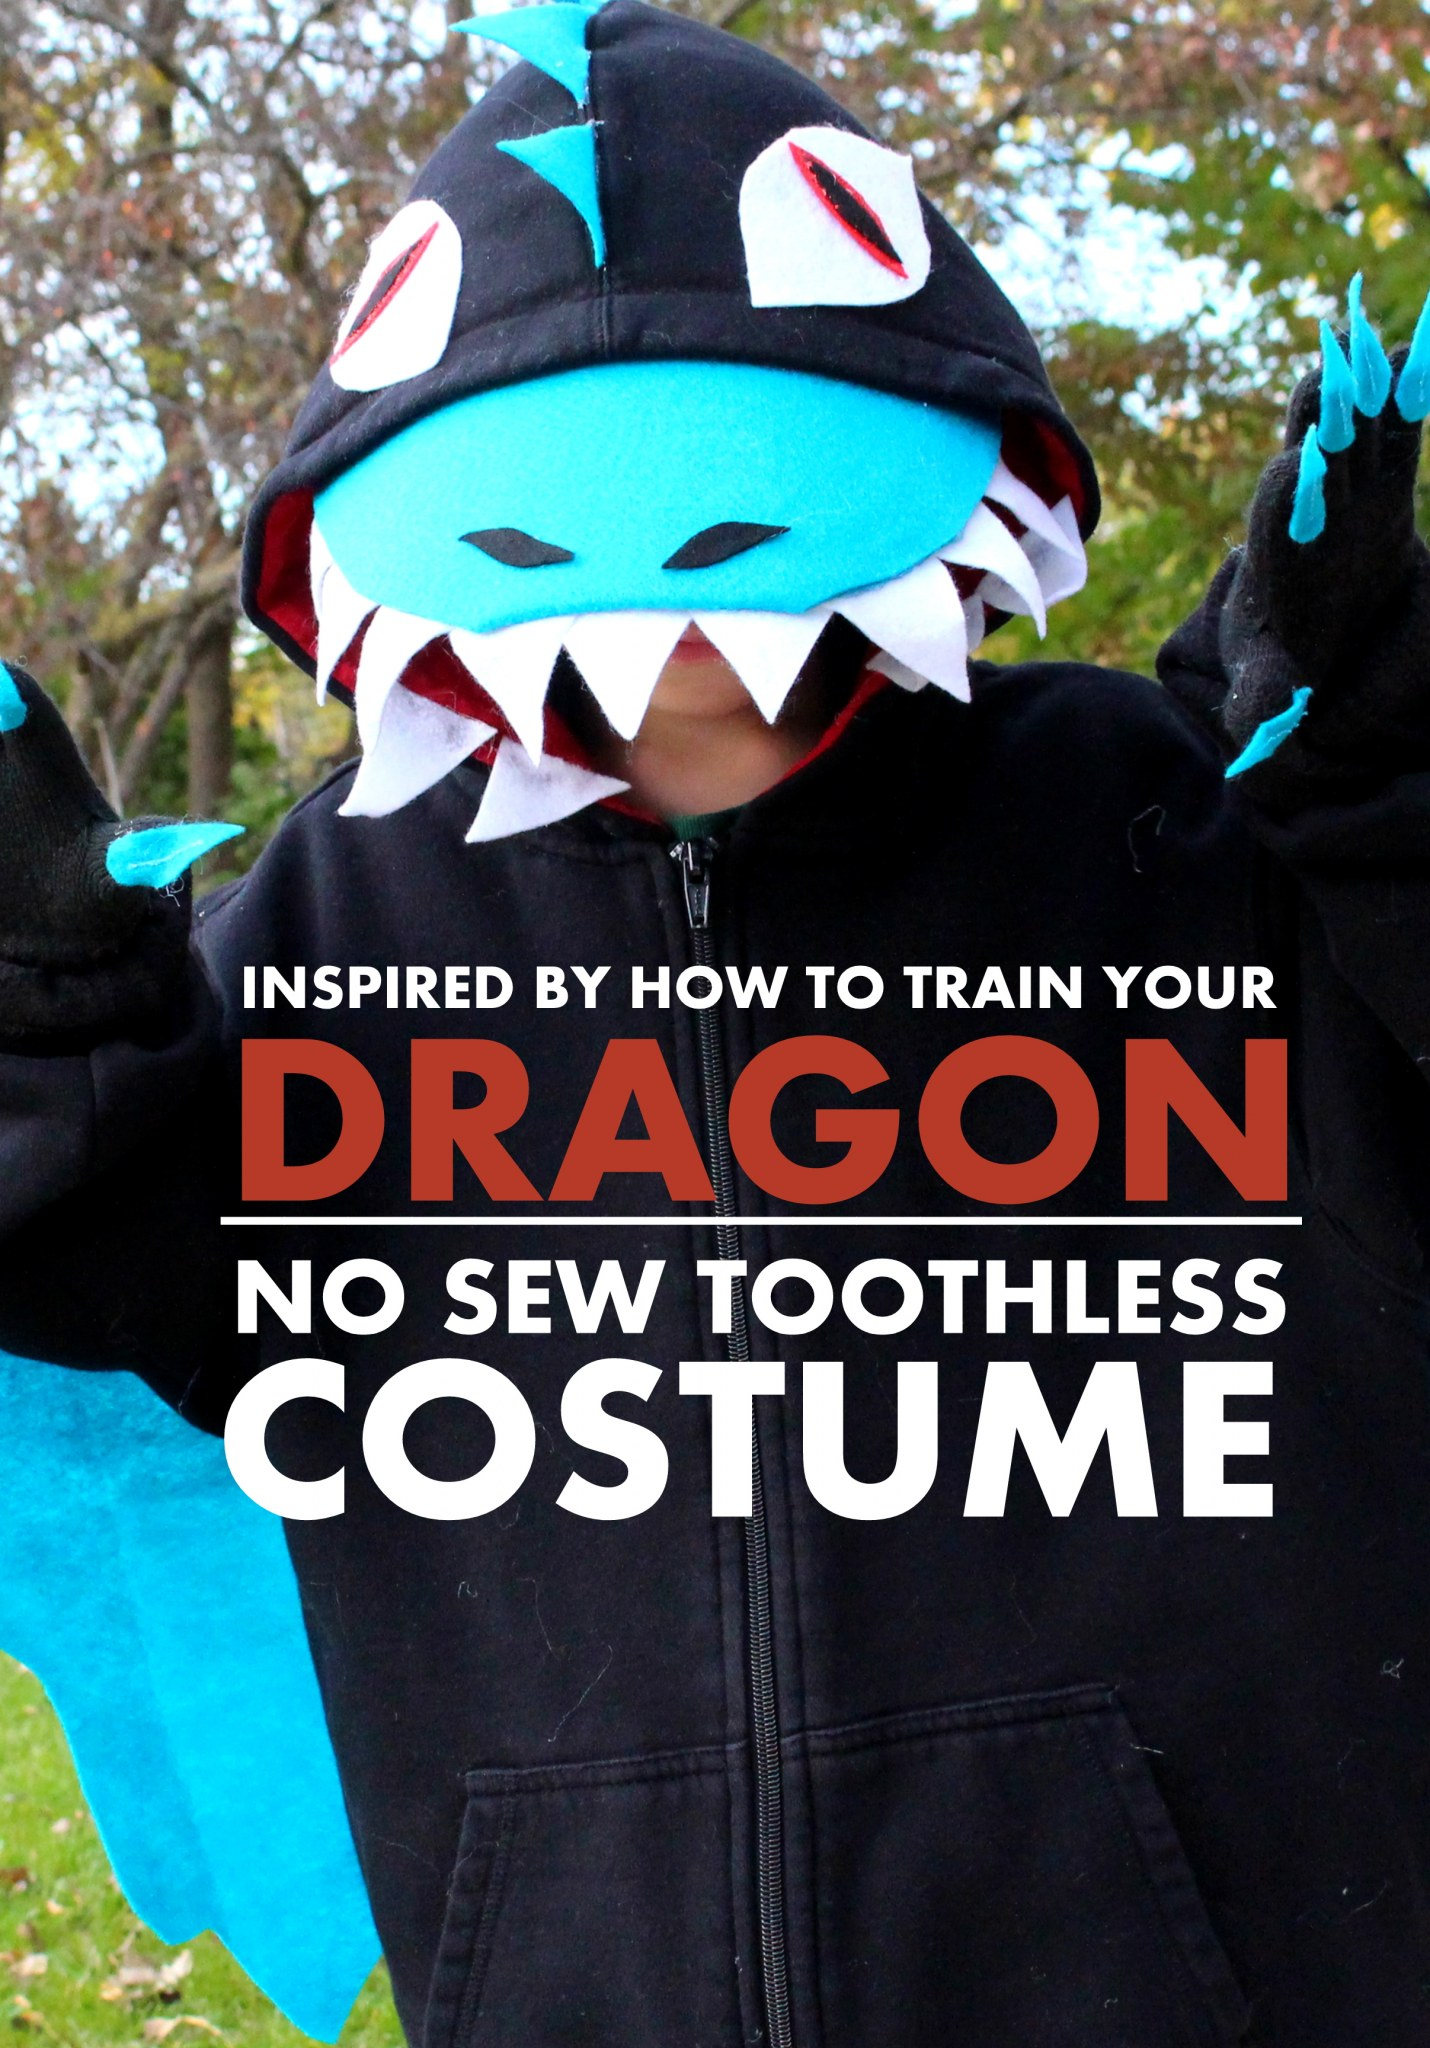 NO SEW TOOTHLESS COSTUME